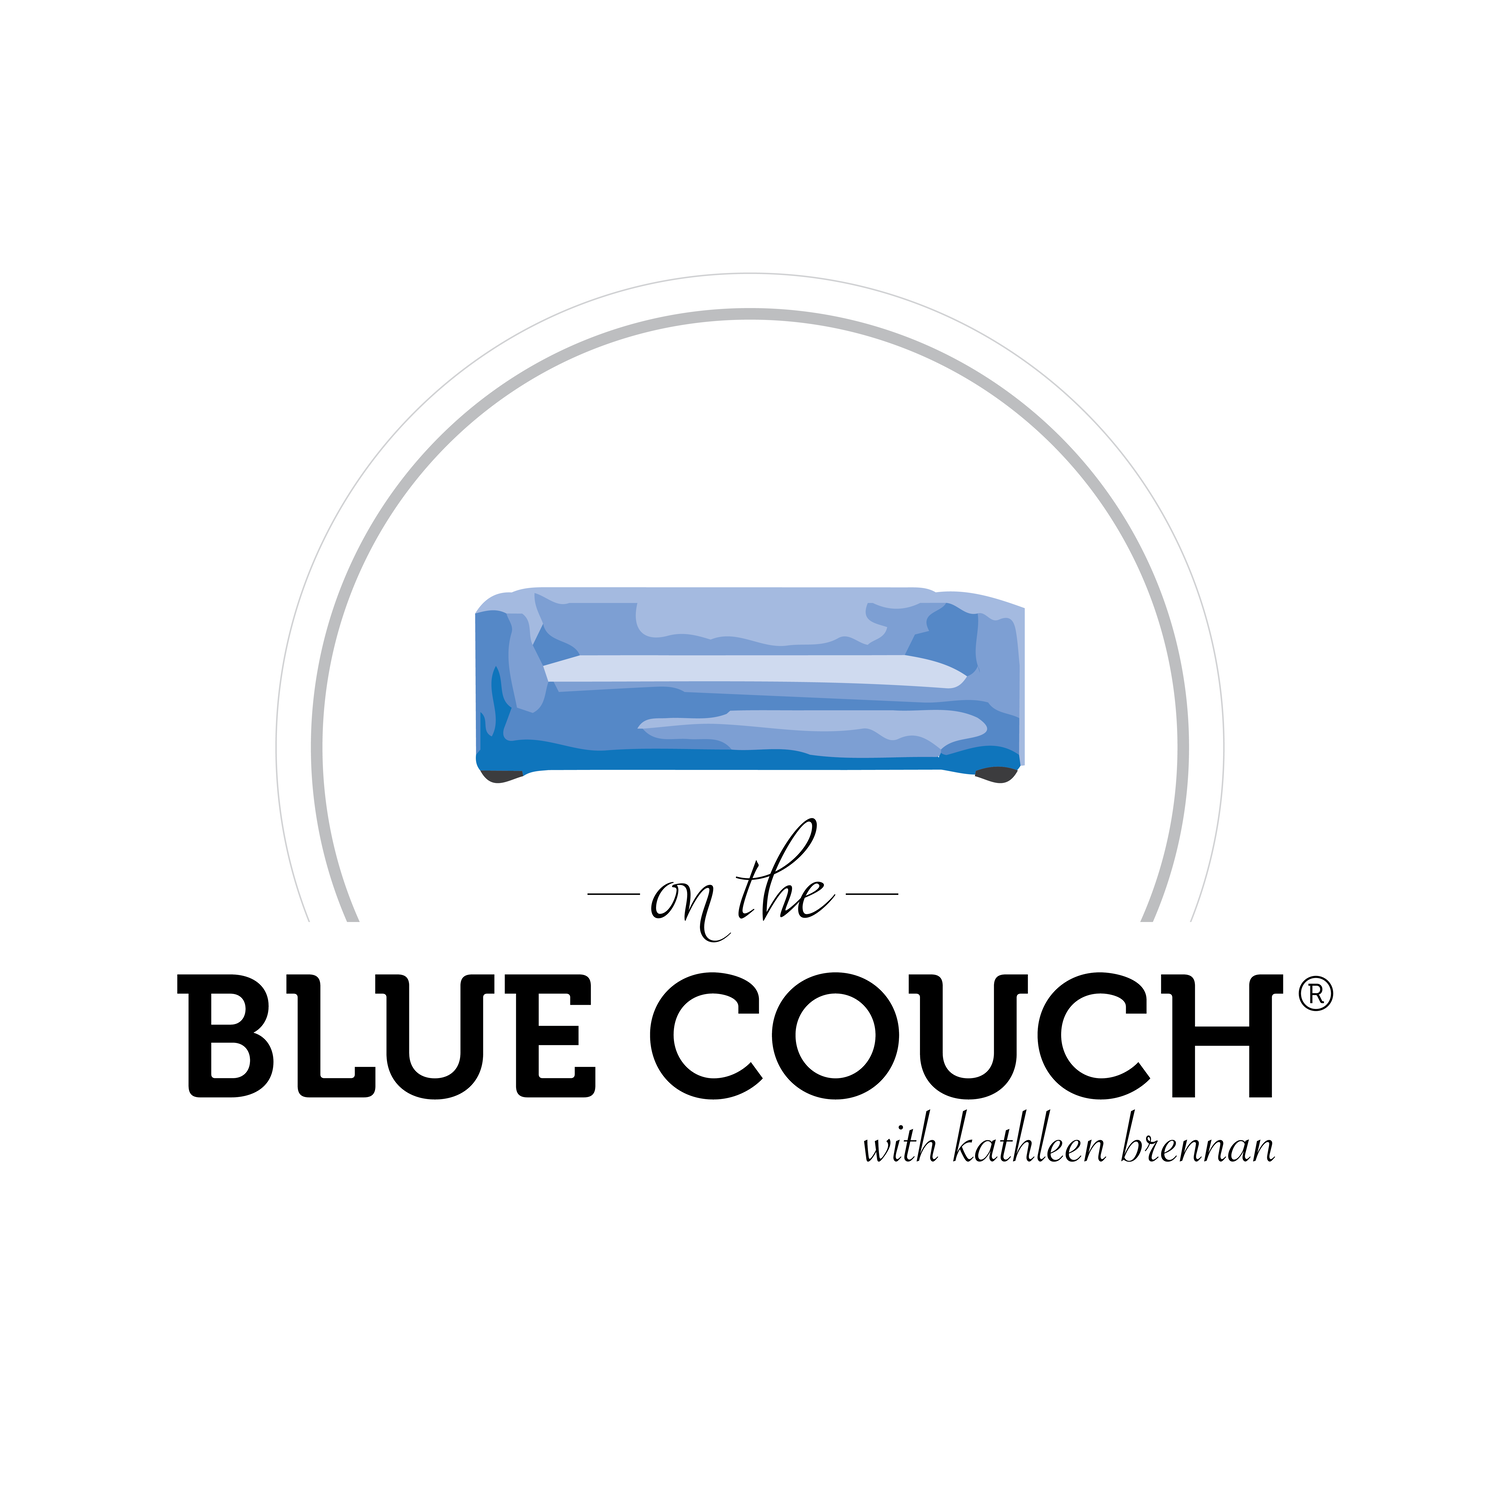 On The Blue Couch Podcast — 26: Meditation: Welcoming Change